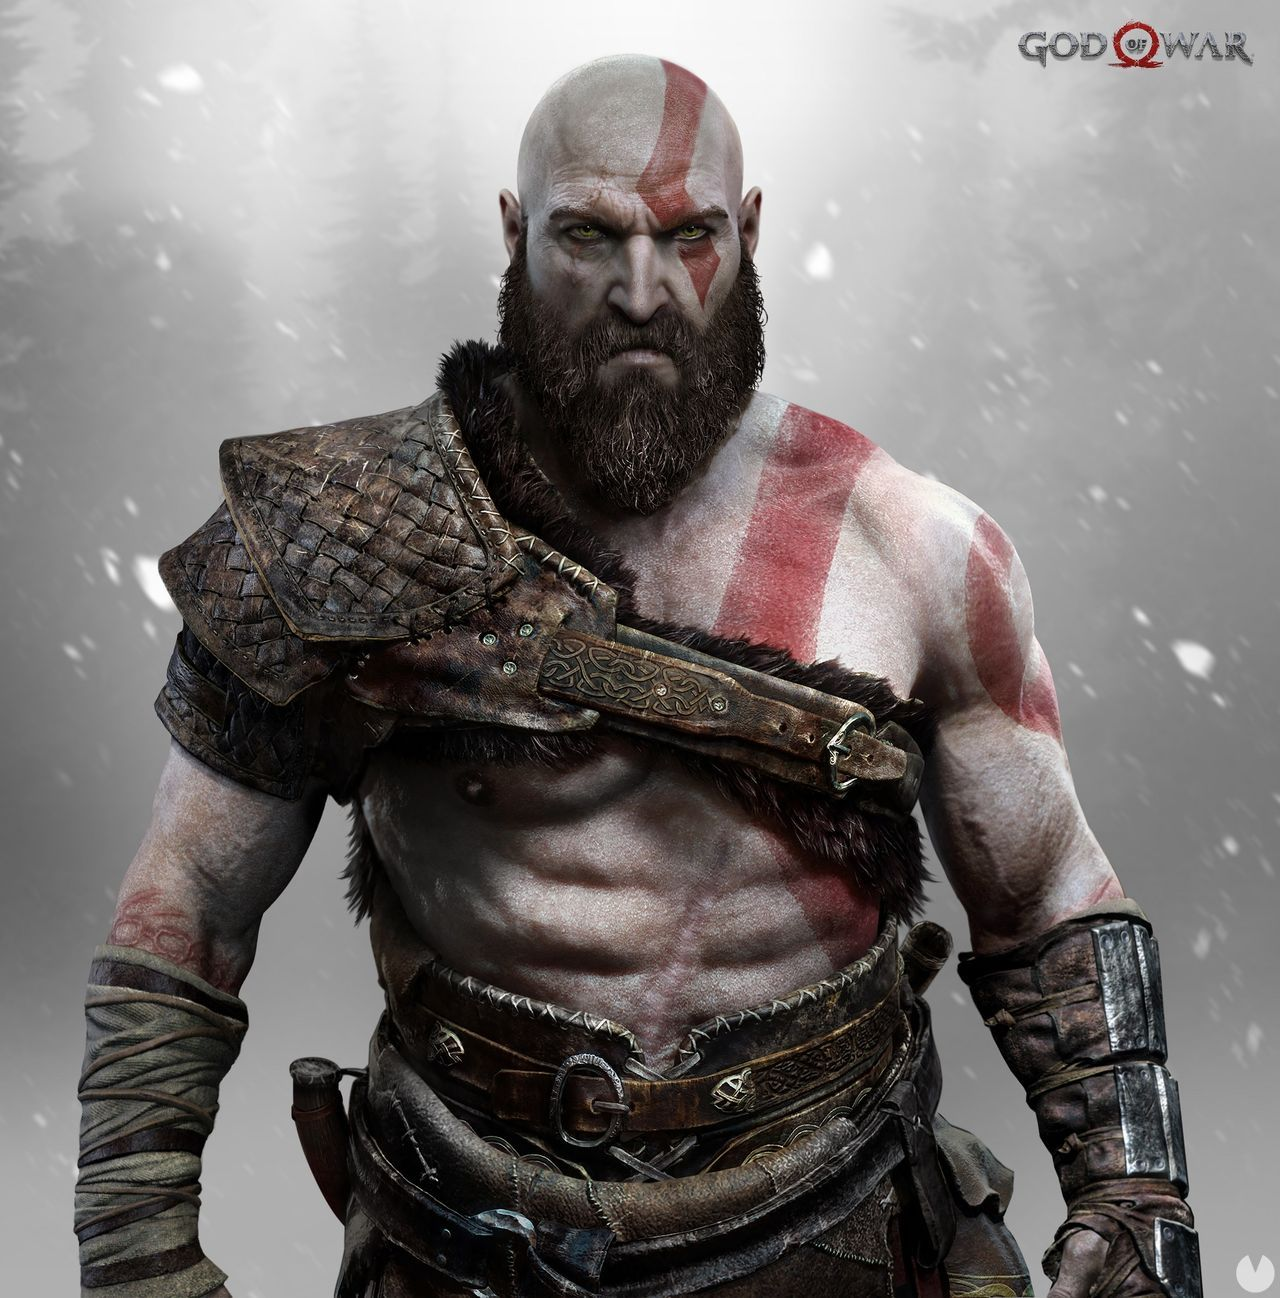 god-of-war-201711112176_1.jpg